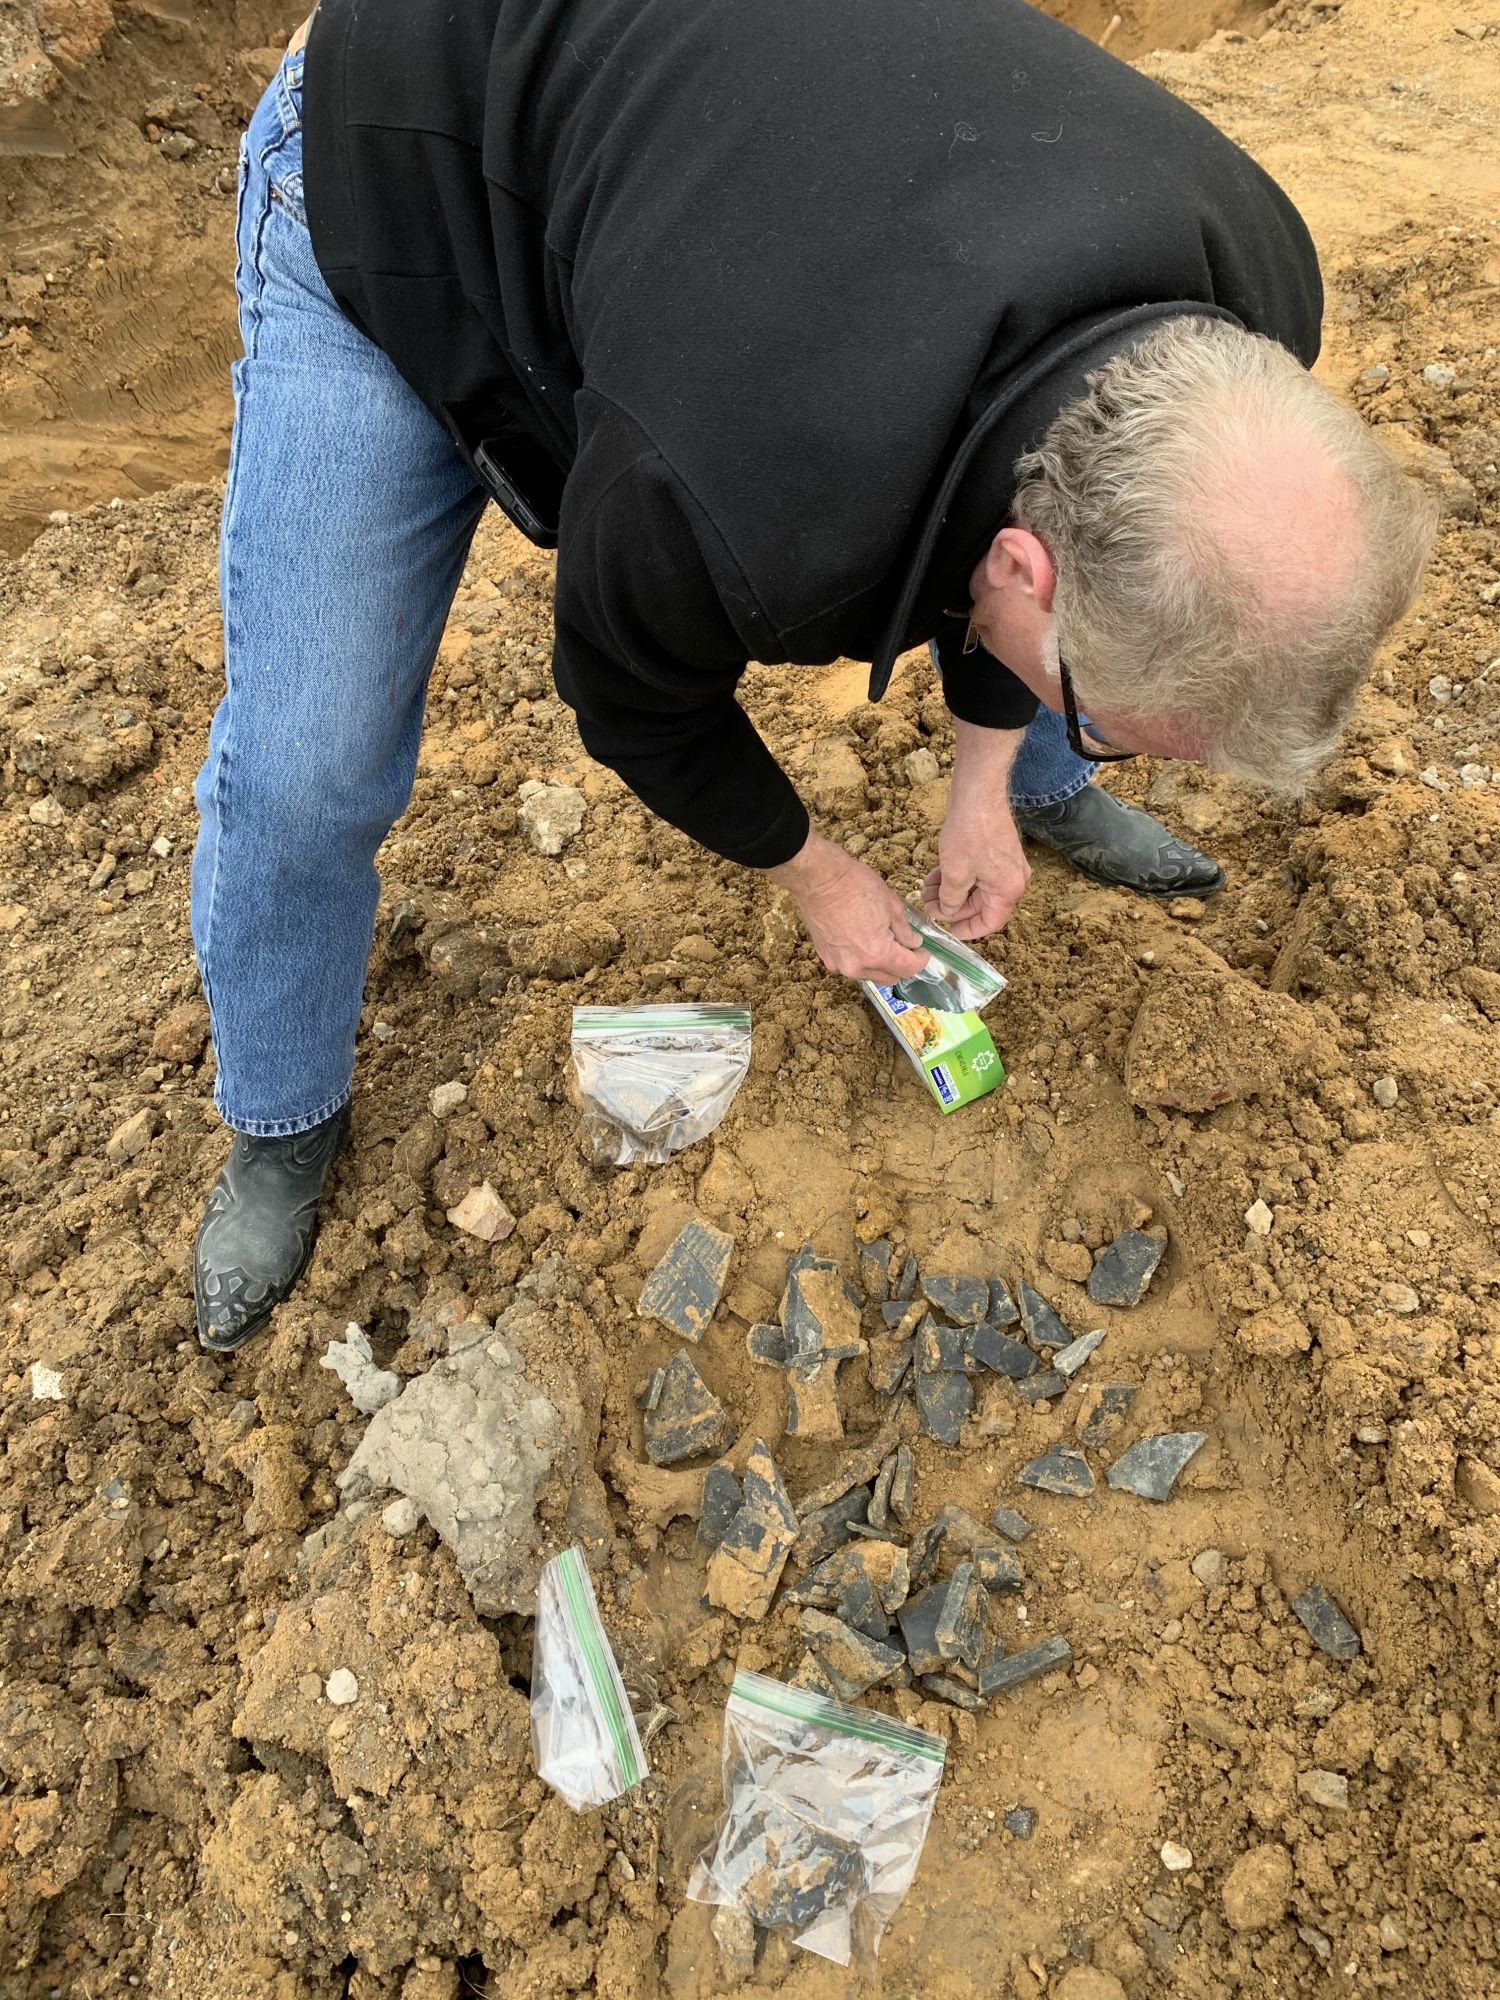 On Monday, Jim Schermbeck collected samples of the black plastic found in the dirt. They will be given to a metals toxicologist this week for testing.